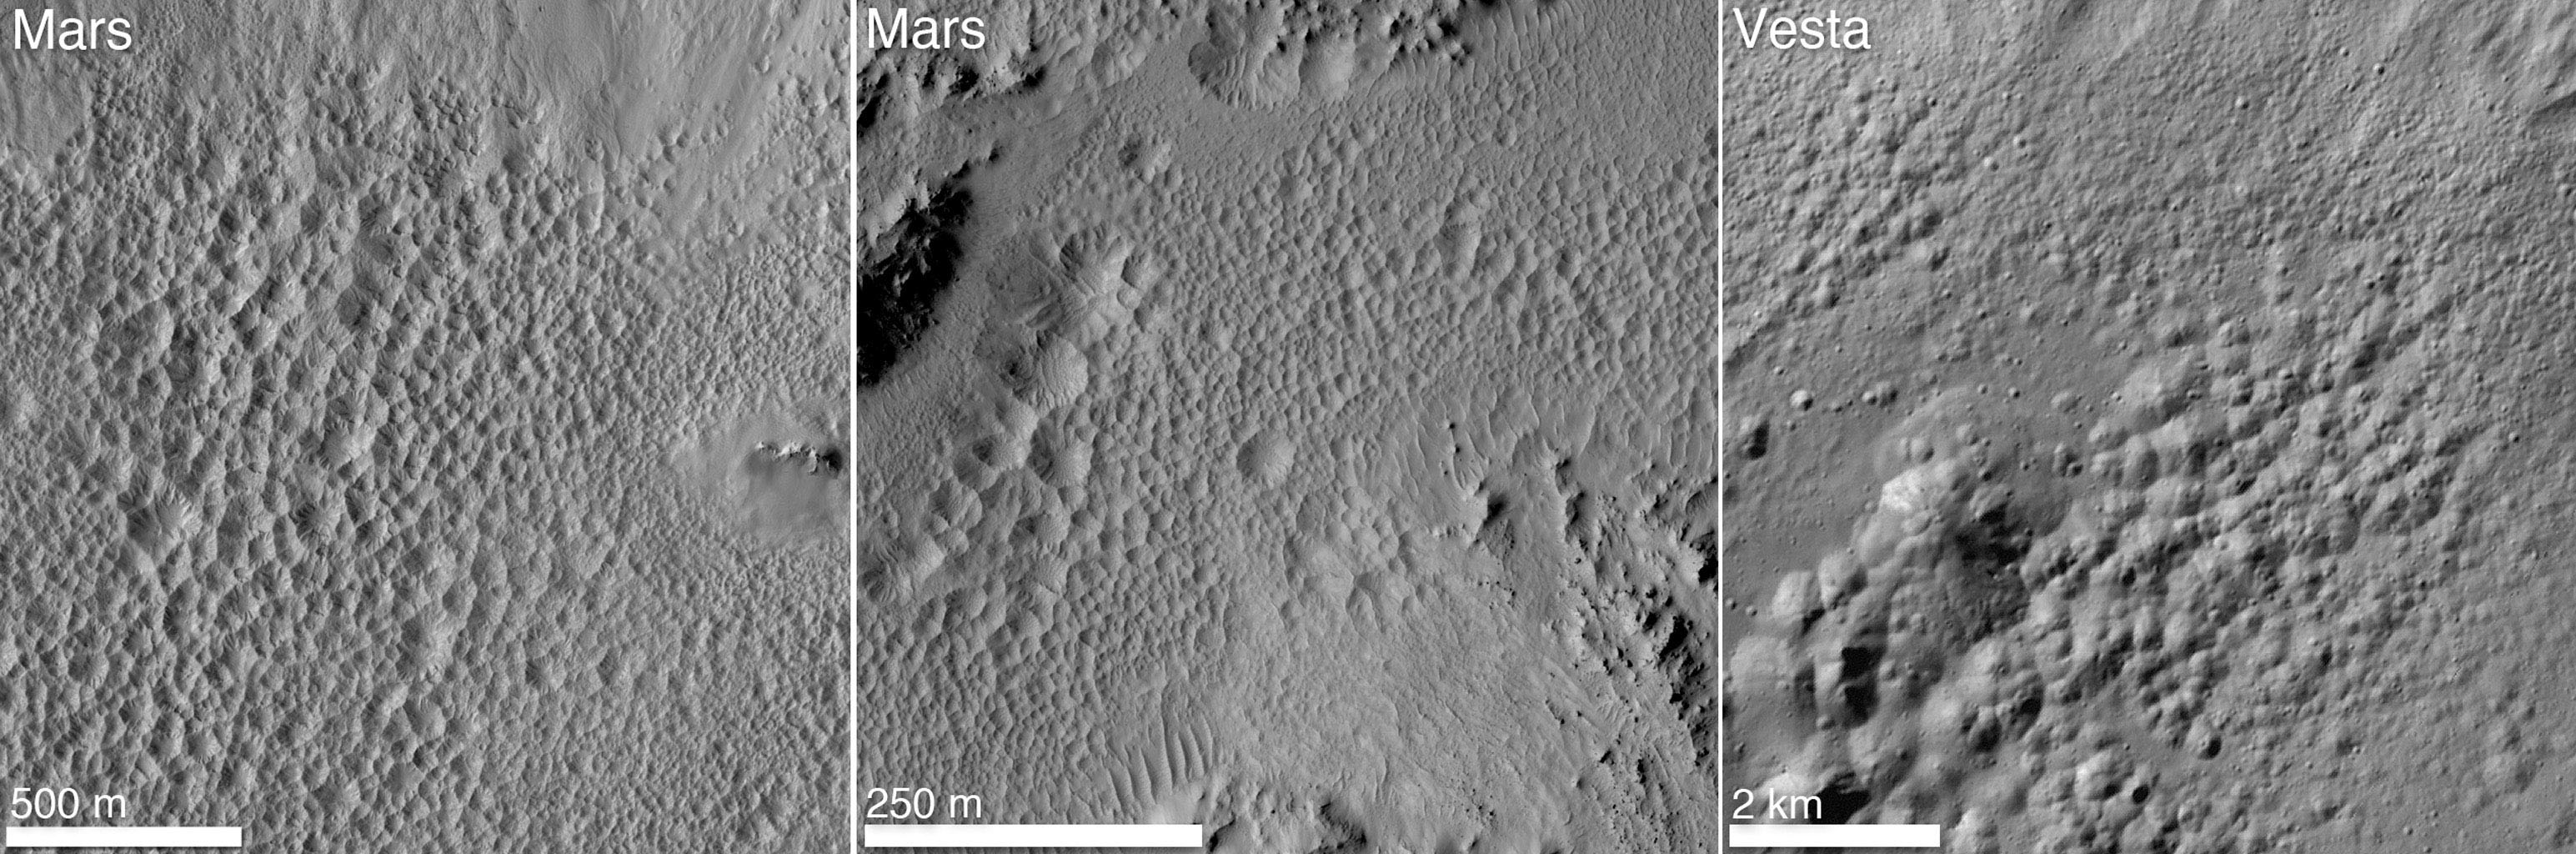 Pitted Terrain on Mars and Vesta